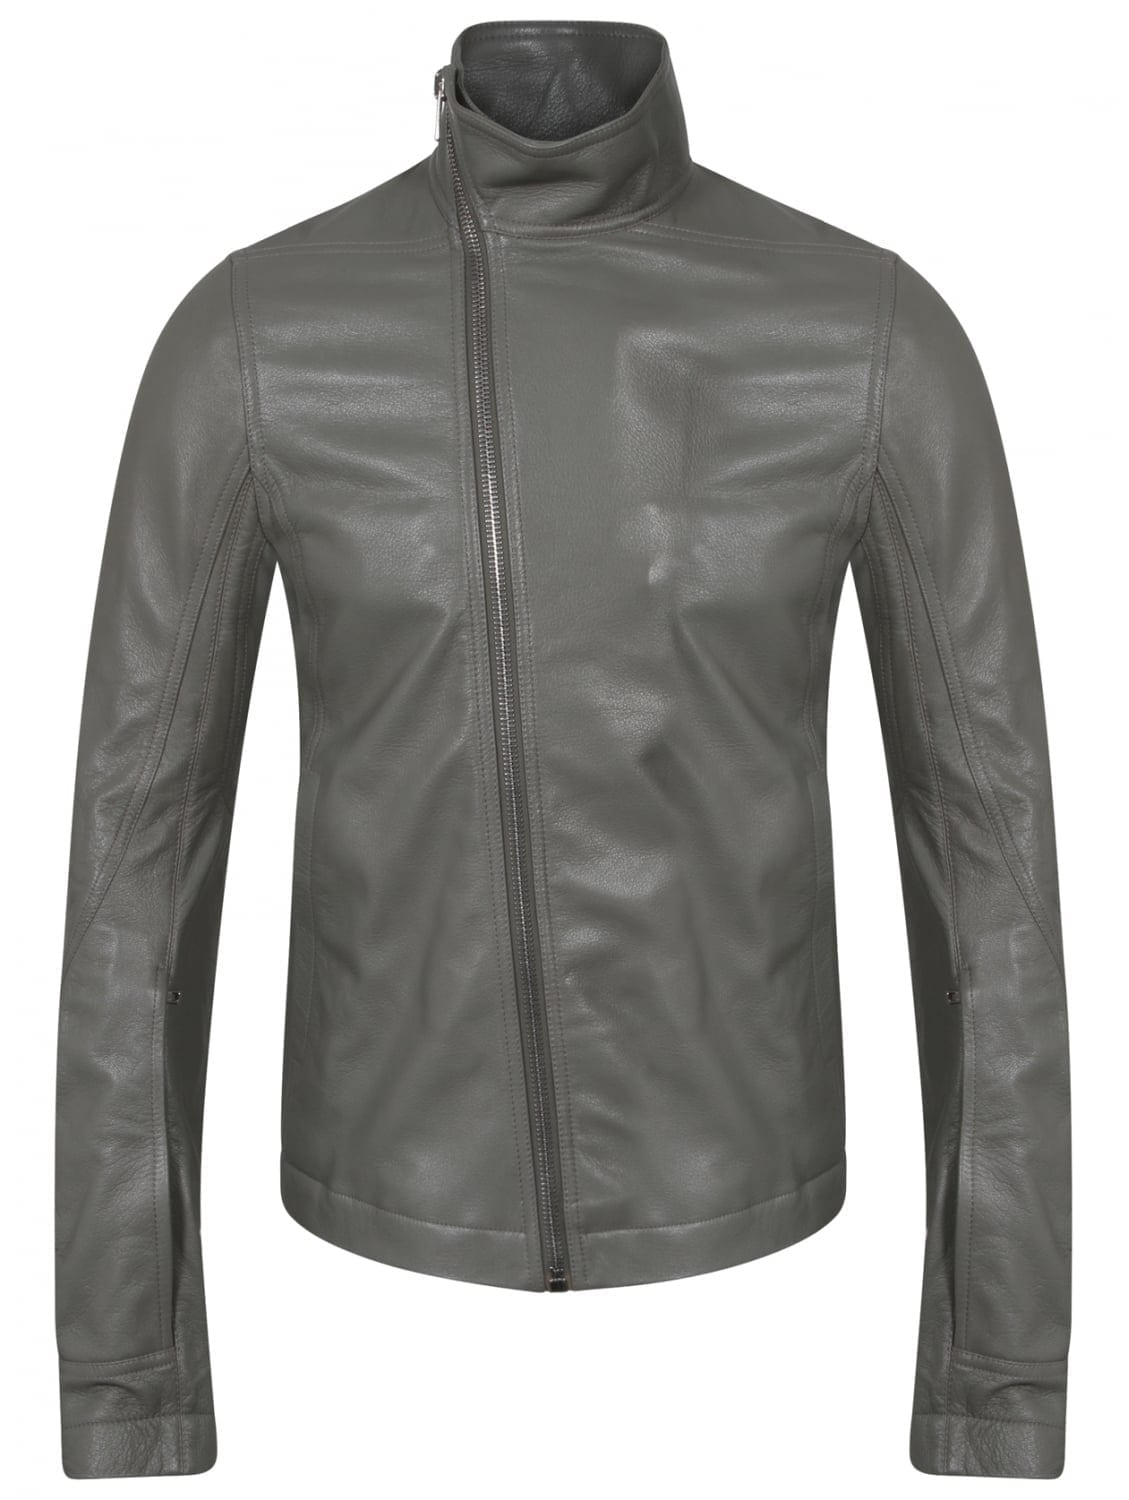 Rick-Owens-Classic-Gray-Jacket Top Brands for Leather Jackets-15 Most Popular Brands 2017 for Men